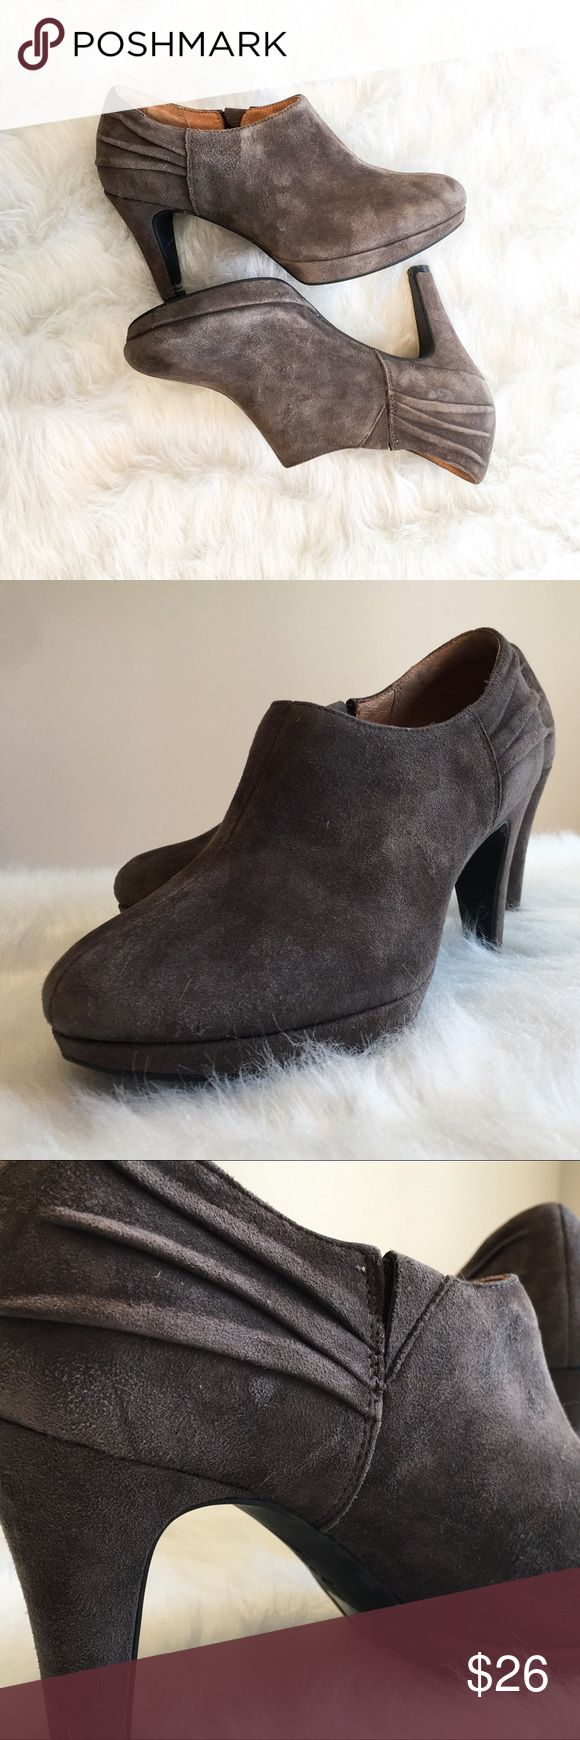 Clark's Indigo Gray Bootie Heels Clark's Indigo gray suede bootie heels. Size 6. Only worn a few time! GUC. They do seem to have a few light scuff marks. VERY COMFORTABLE! No box. ❌ No Trades ❌ No off Poshmark transactions ❤️ Bundle and save 📬 Fast shipper ❤️ I love reasonable offers Clarks Shoes Ankle Boots & Booties